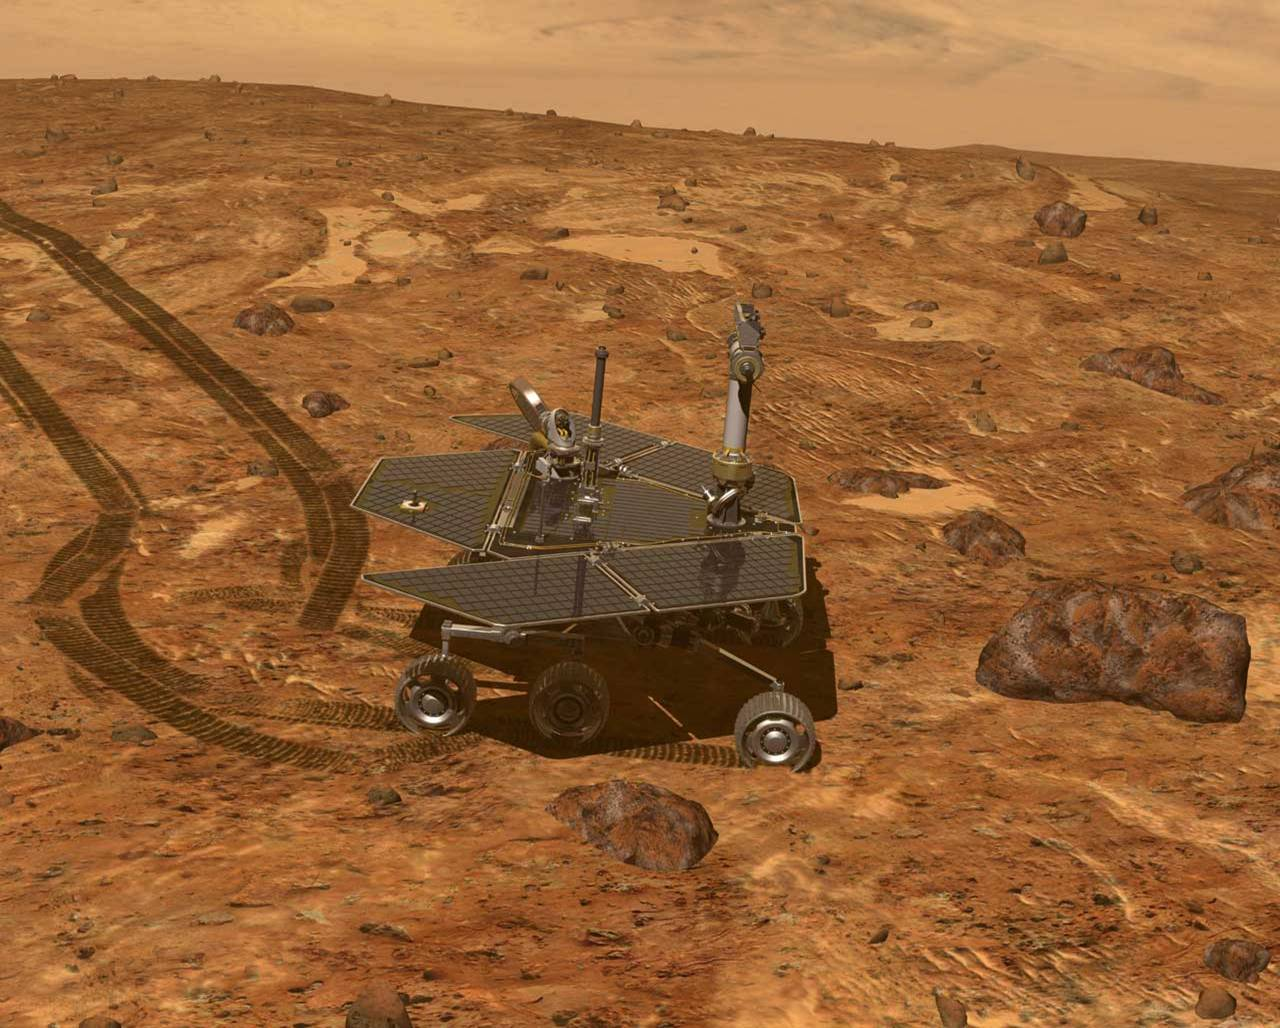 Artist's concept of controlling the rover from Earth, scientists drive the rover along Mars' surface inspecting geological features.